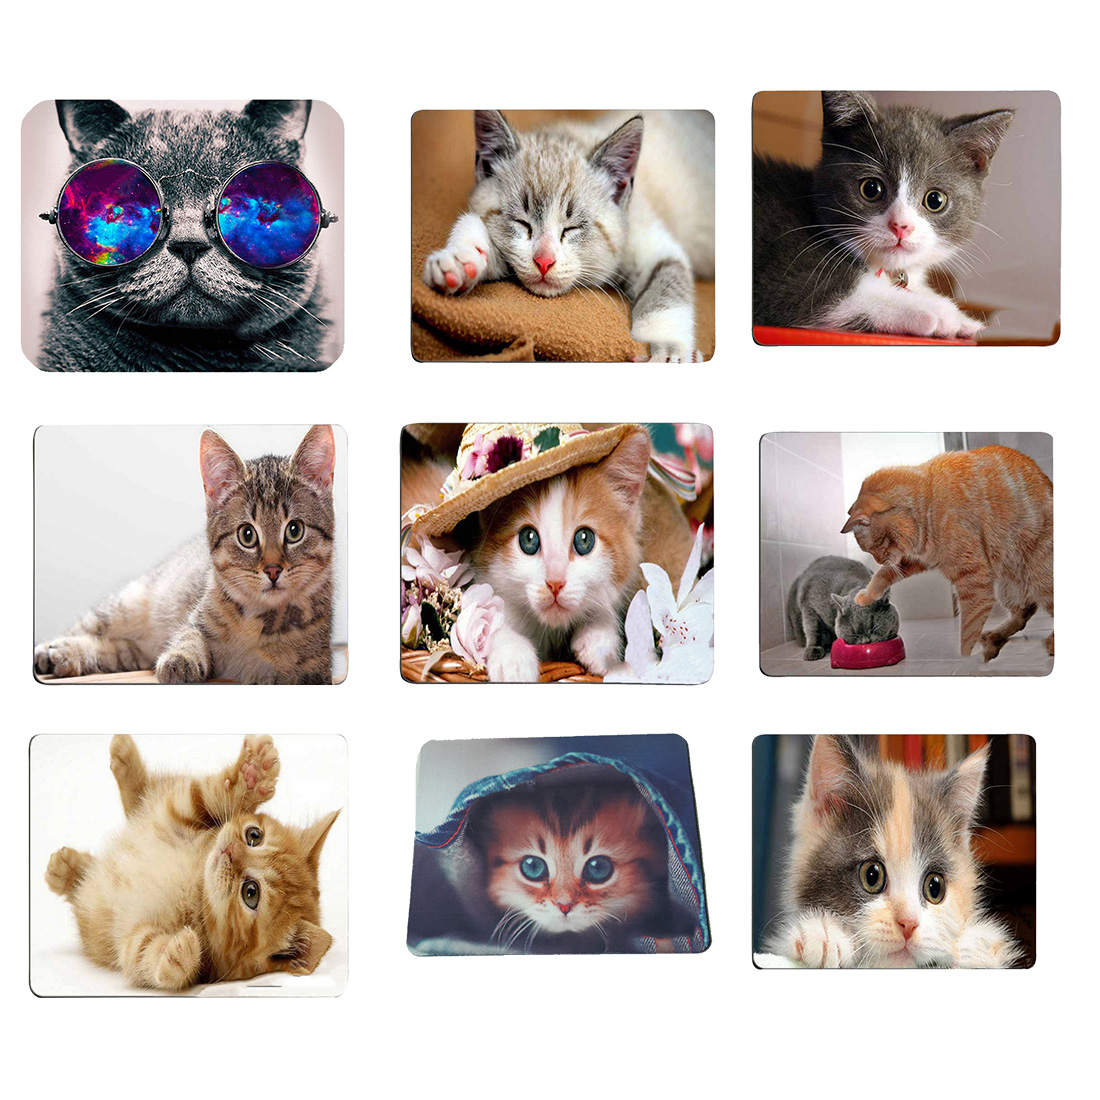 NOYOKERE Cute Mouse Pad Cat Picture Anti-Slip Laptop PC Mice Pad Mat Mouse pads For Optical Laser Mouse Gamer Mousepad alluring strapless printed lace up women s bikini set